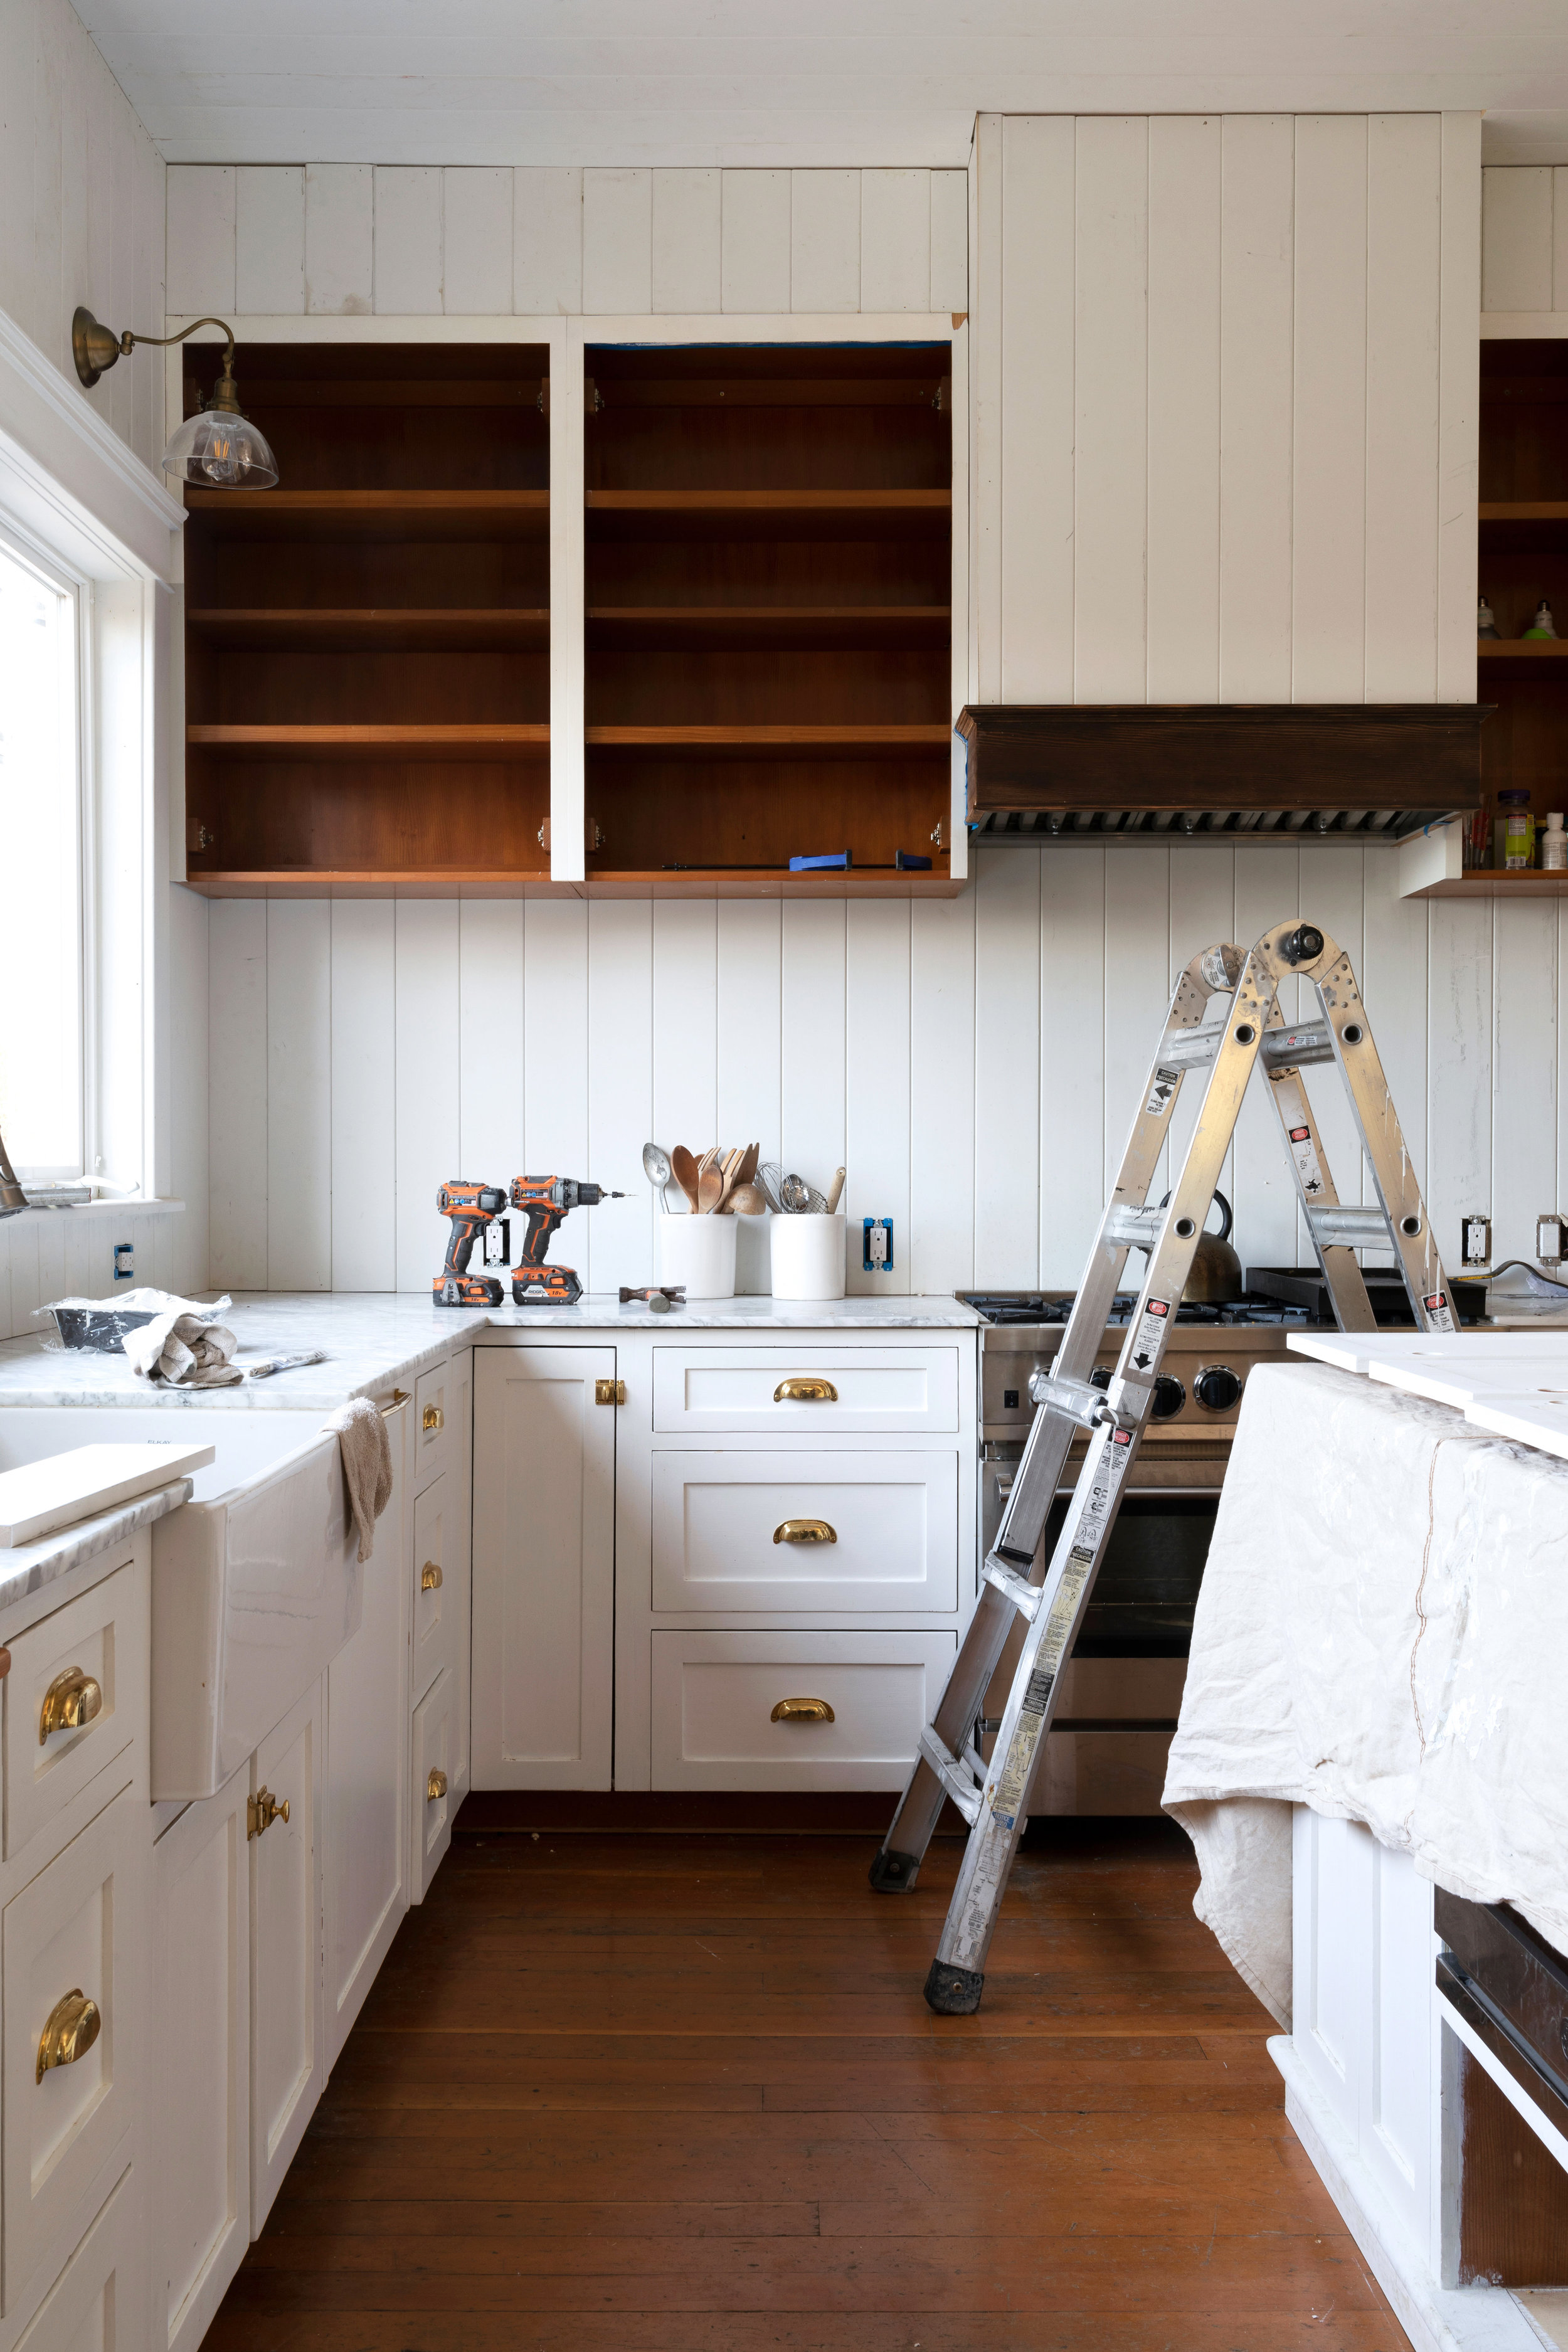 Farmhouse Kitchen Let S Talk About The Built In Hood Vent The Grit And Polish